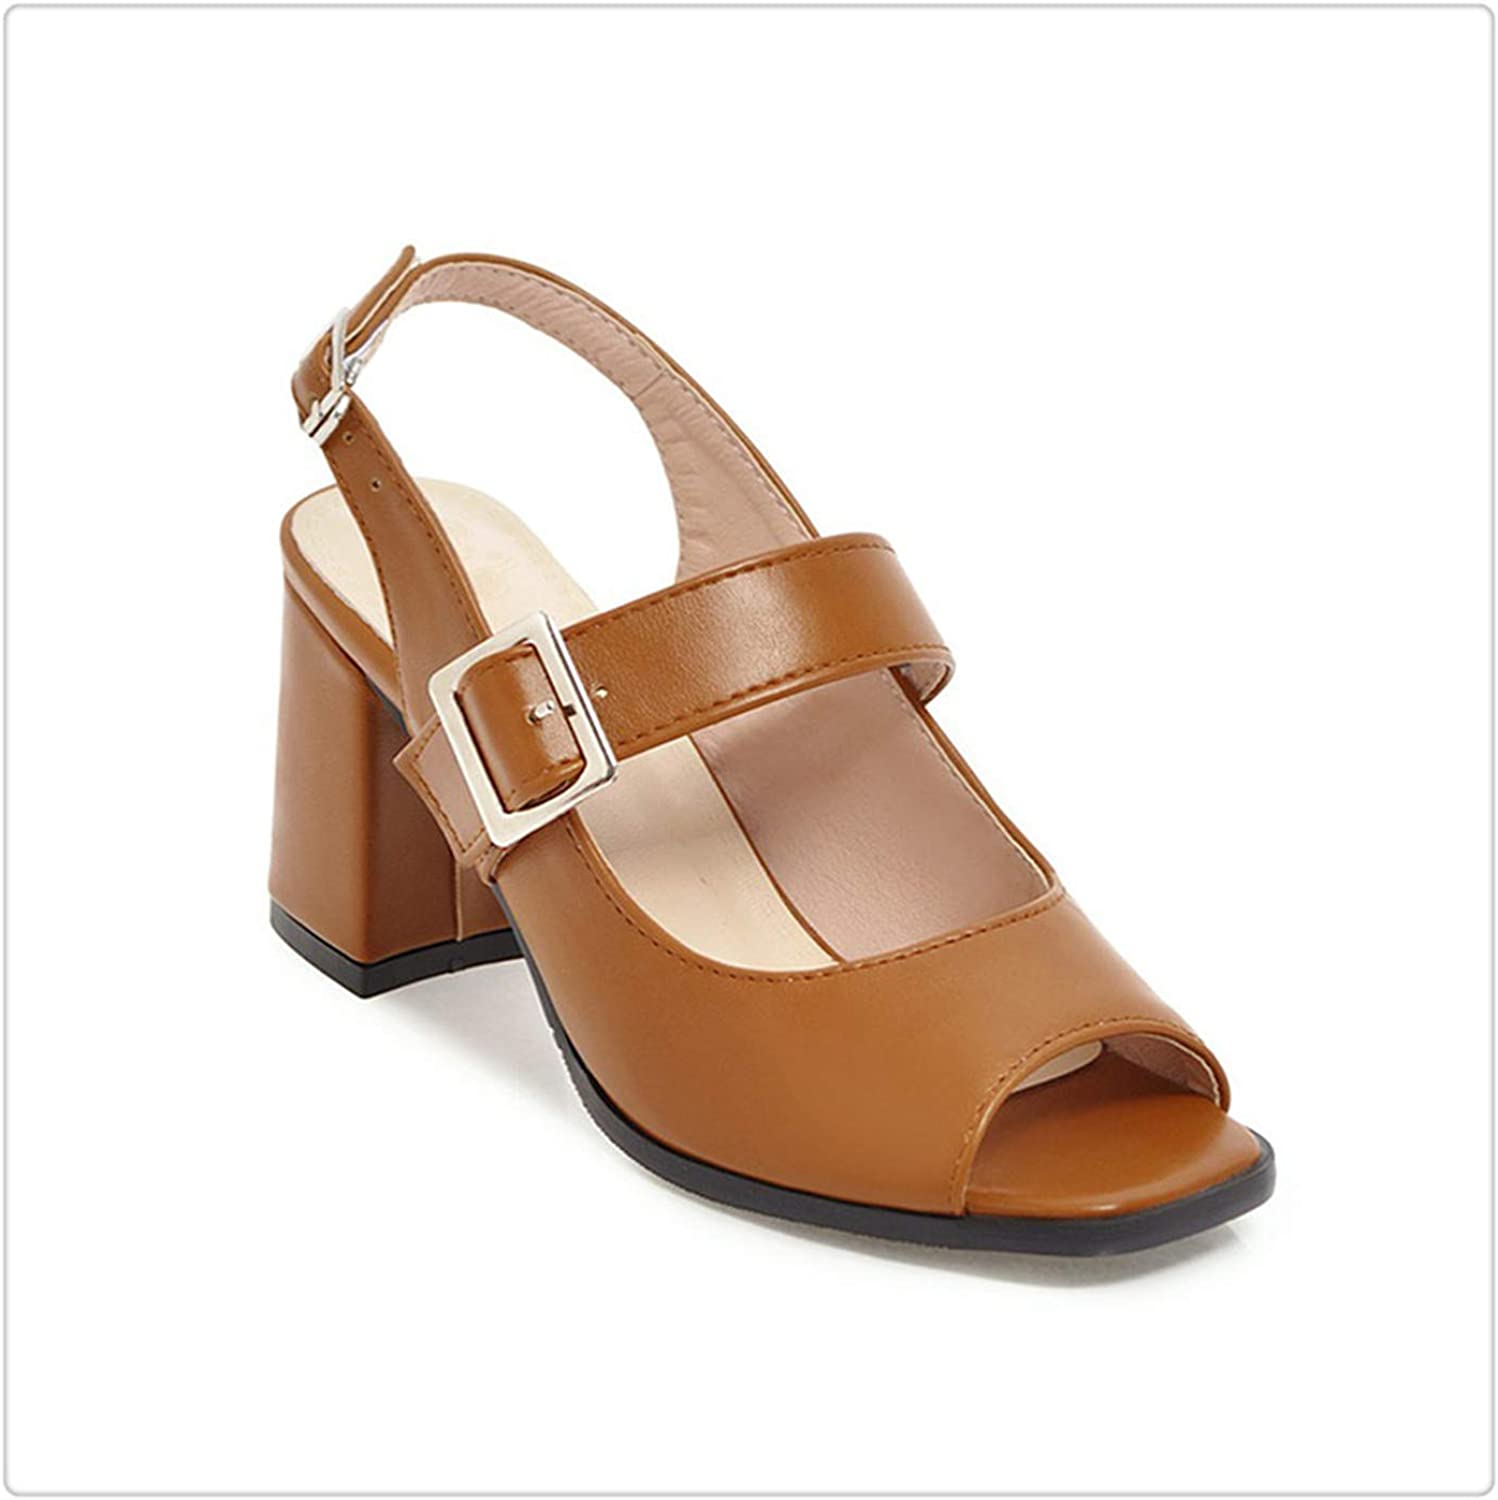 ECOLAQ& High Heels Sandals Women Buckle Back Strap Sexy Peep Toe Square Heels Footwear